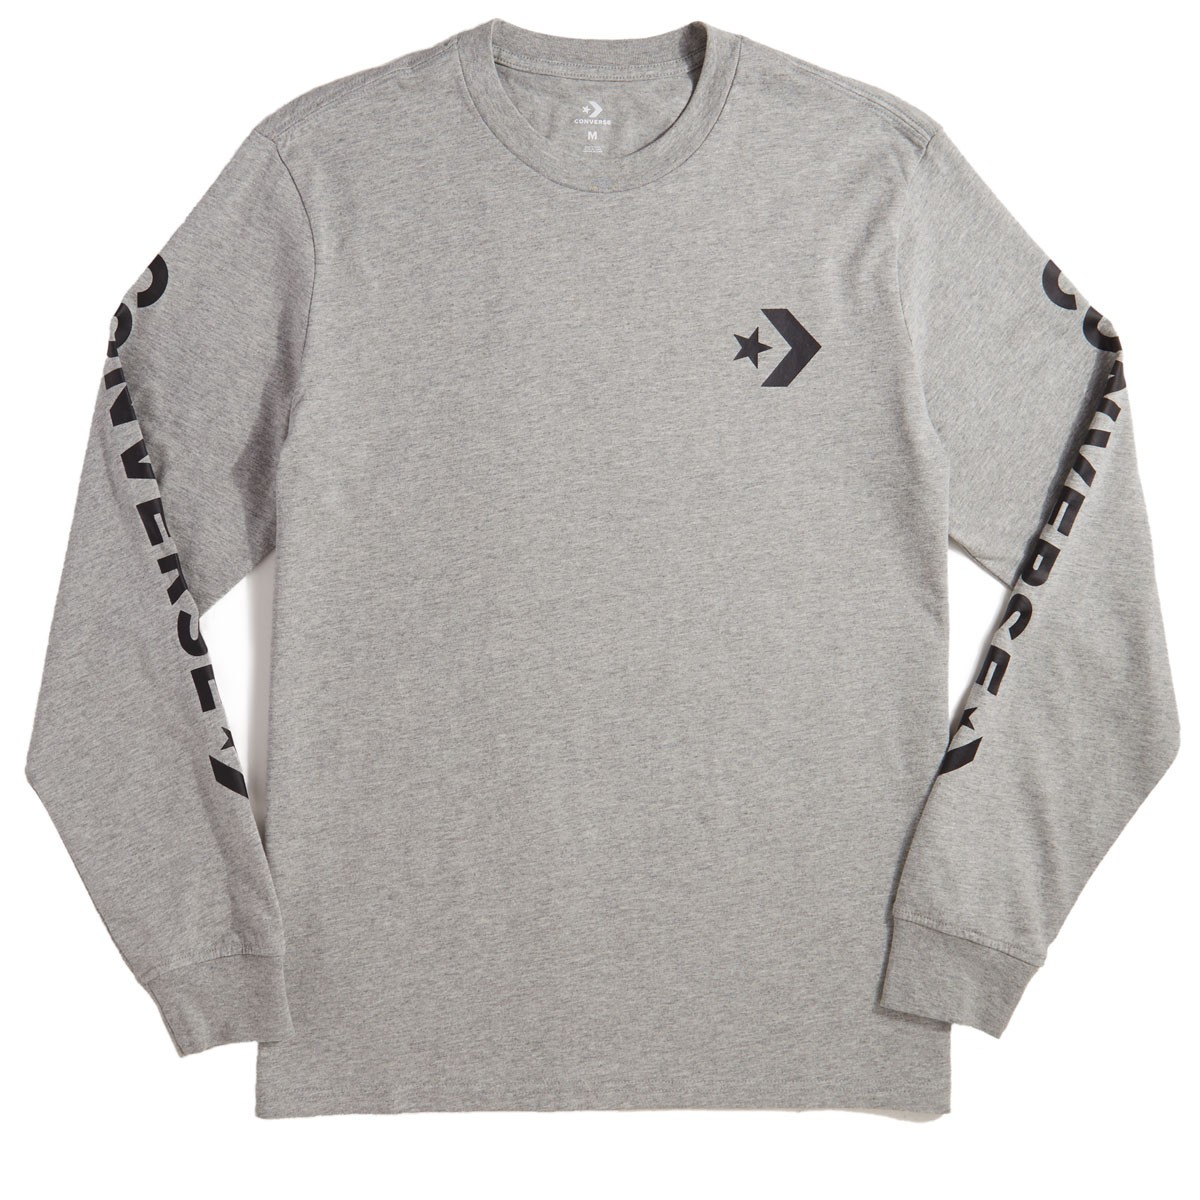 be084b765227 Converse Star Chevron Wordmark Long Sleeve T-Shirt - Vintage Grey ...